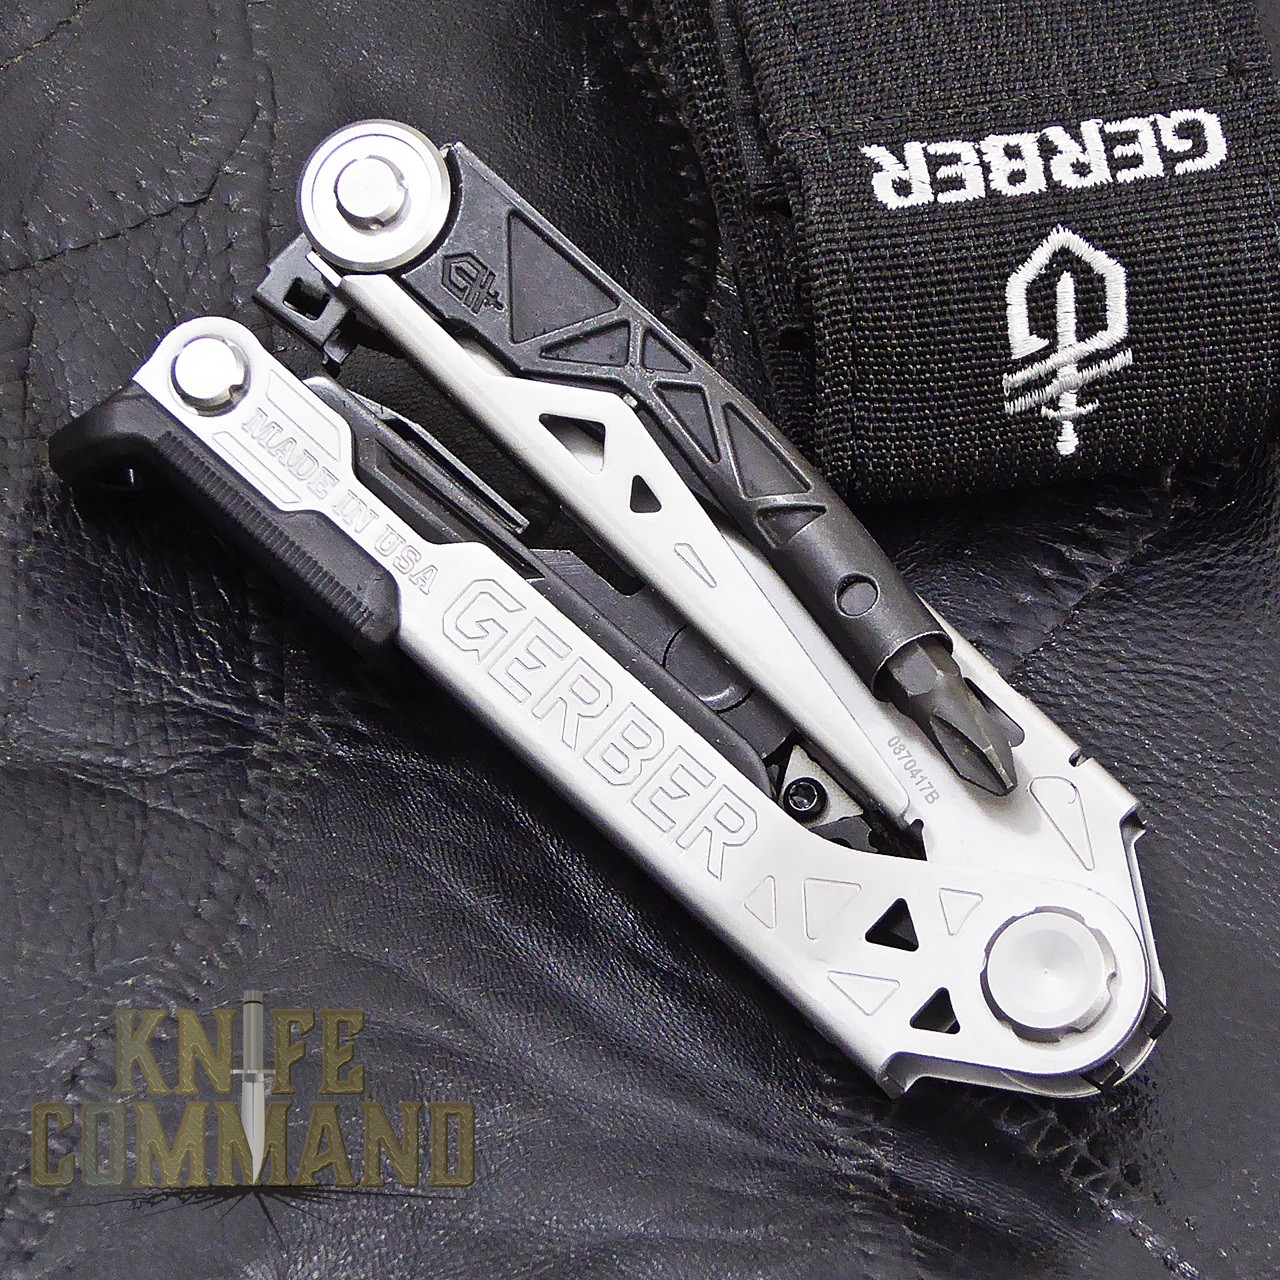 Gerber Center-Drive Multi-Tool Pliers with Sheath and Bit Set.   Folds up compact.